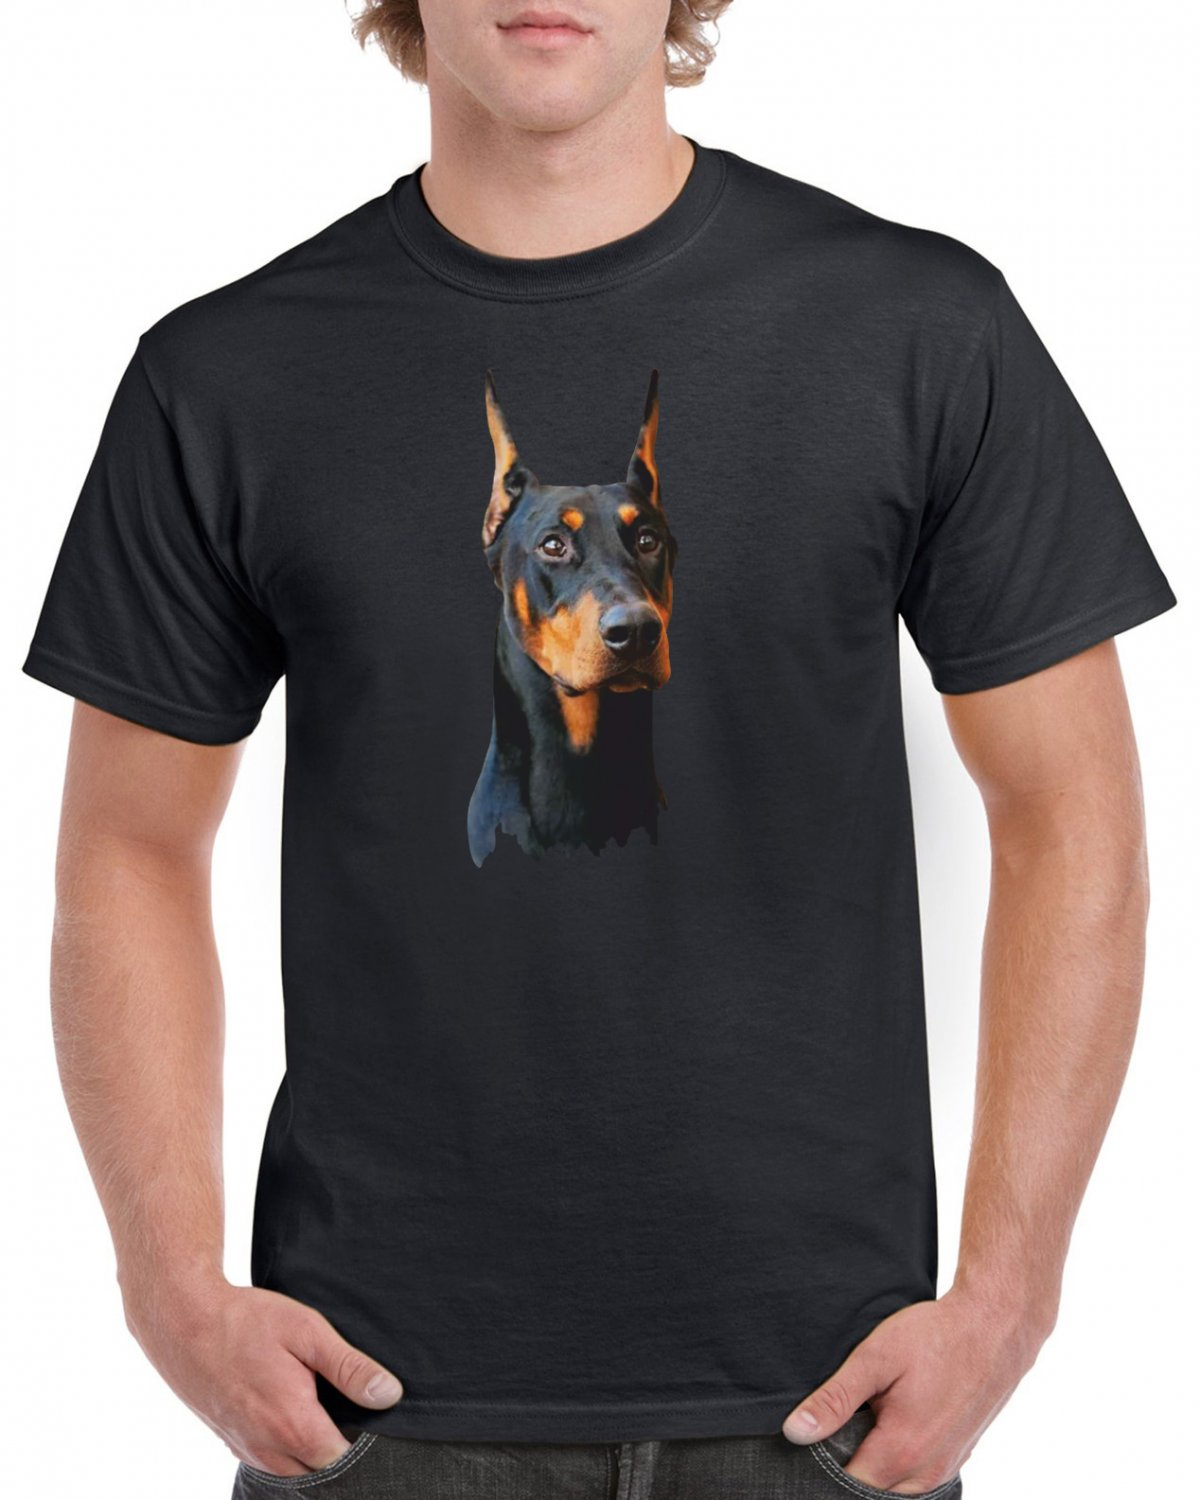 Doberman Dog T-shirt Dog Lovers Cool Tshirt Unisex Top Tee